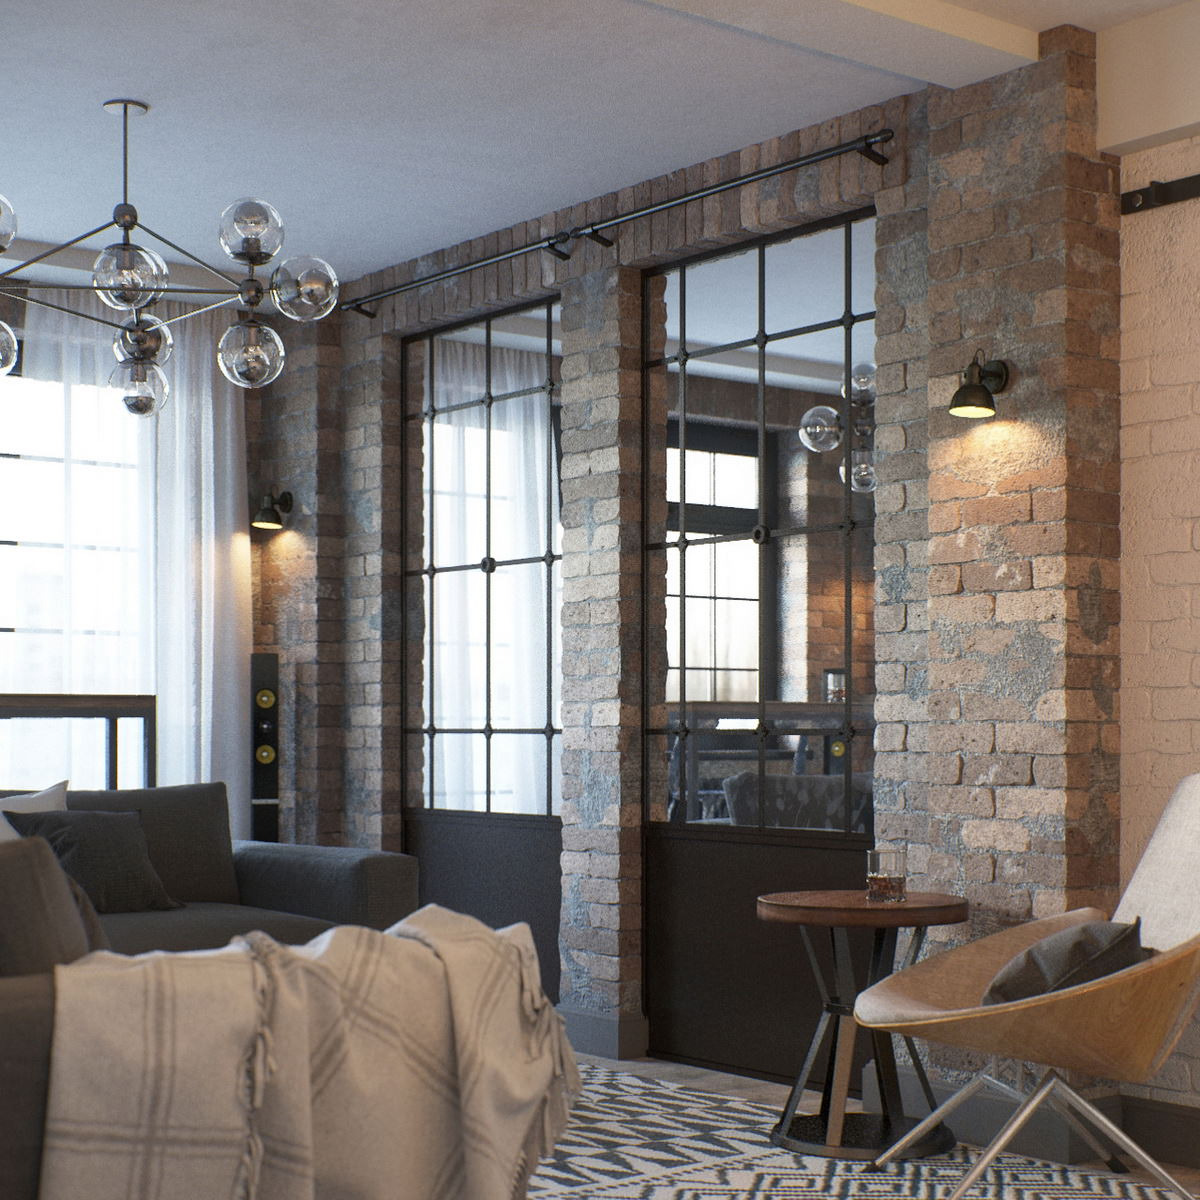 interior-3D-visualization-loft-room-mirrors